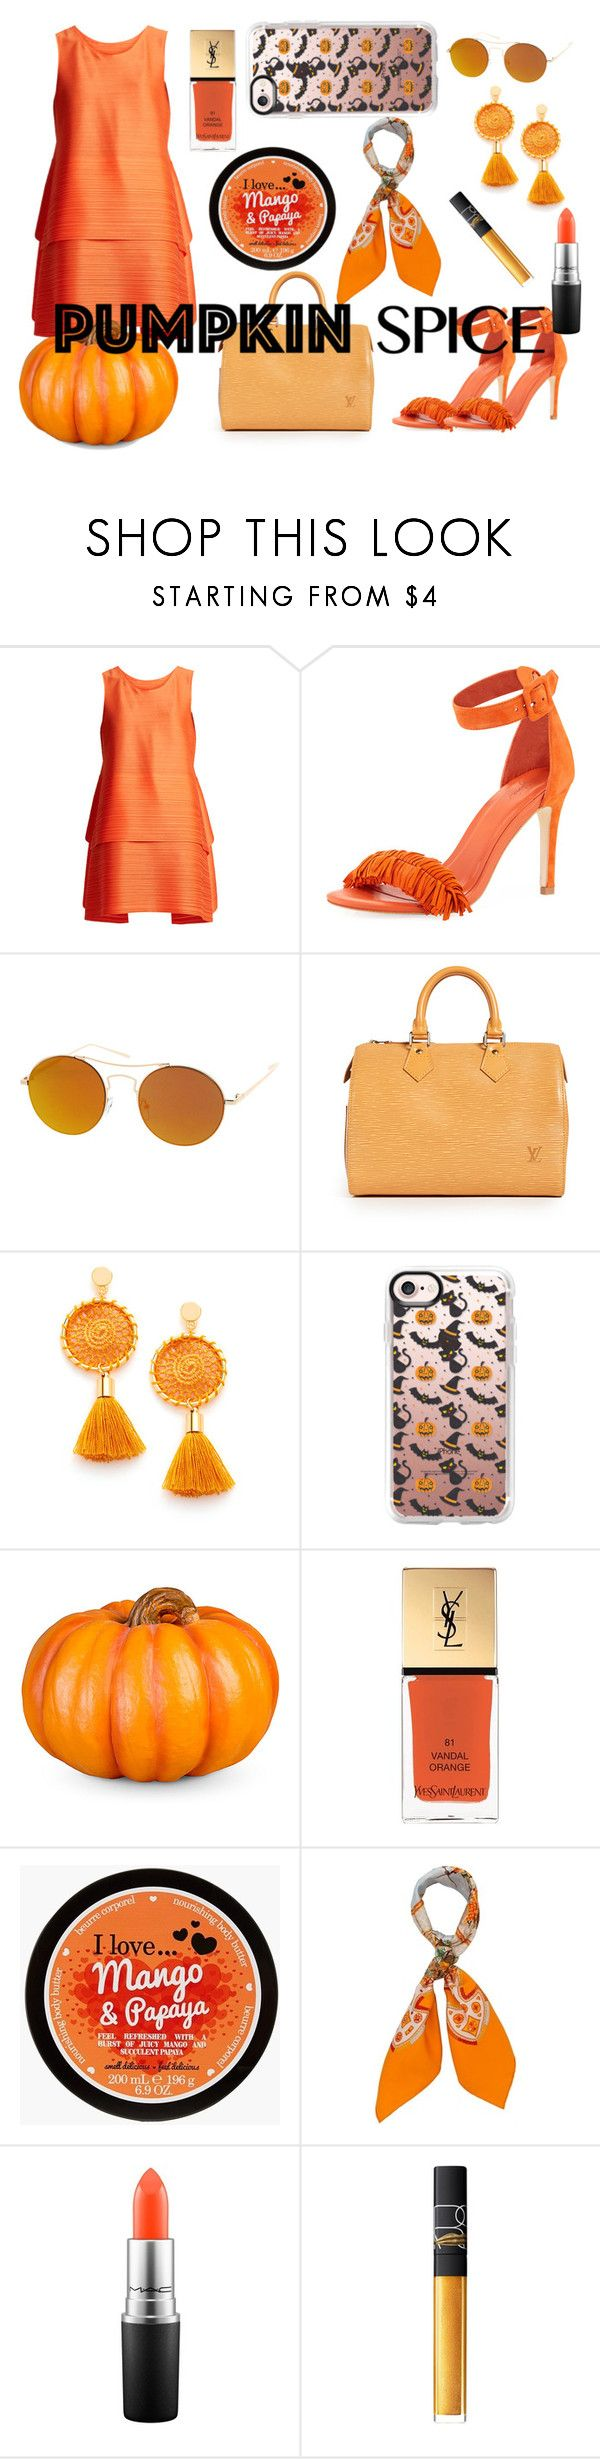 """""""Pumpkin Spice"""" by fashionpolyvore112num2 on Polyvore featuring Pleats Please by Issey Miyake, Joie, SW Global, Casetify, Improvements, Yves Saint Laurent, Hermès, MAC Cosmetics and NARS Cosmetics"""